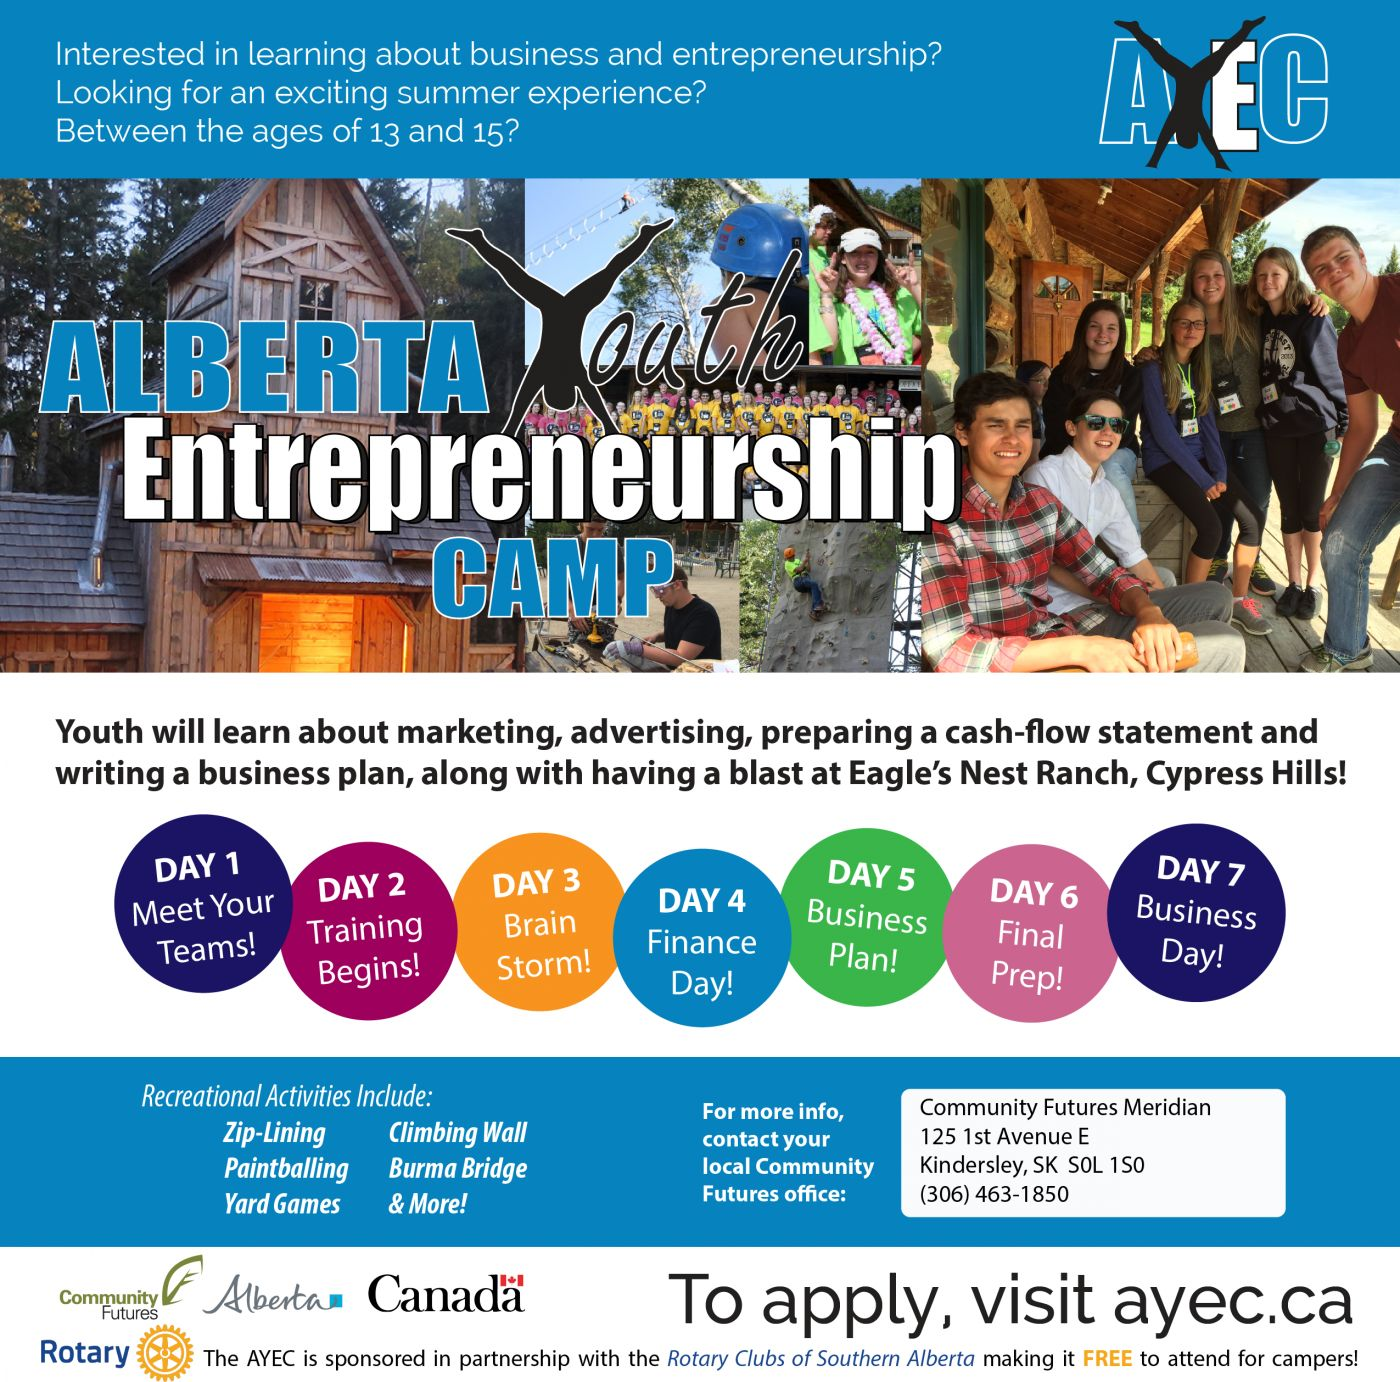 Is your 13 to 15 year old interested in entrepreneurship? Send them to camp for FREE!